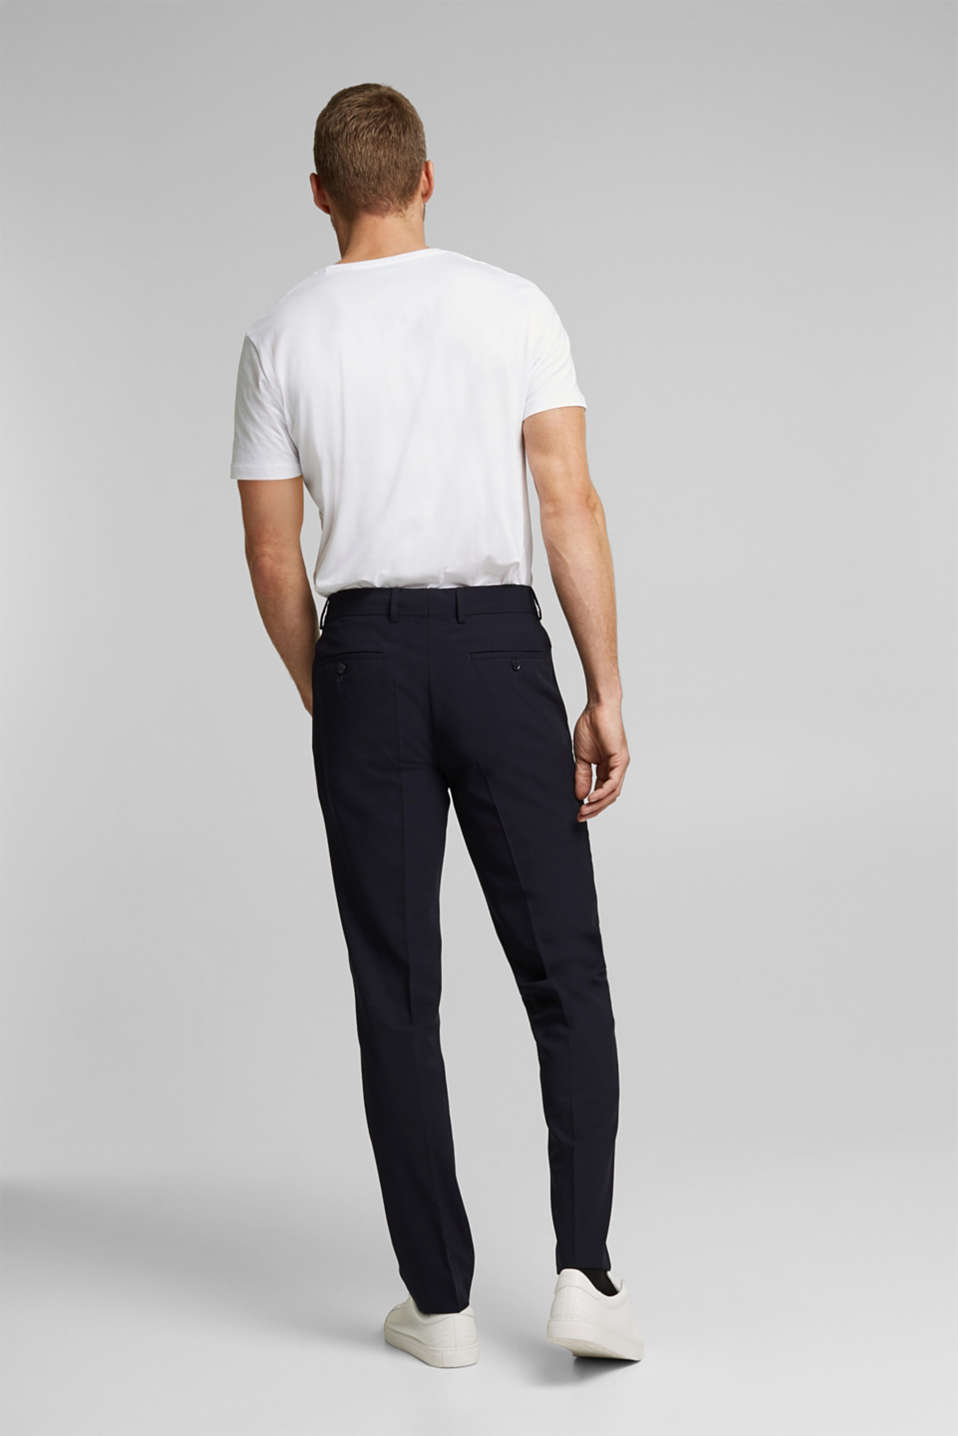 ACTIVE GRID mix + match: Trousers, DARK BLUE, detail image number 1